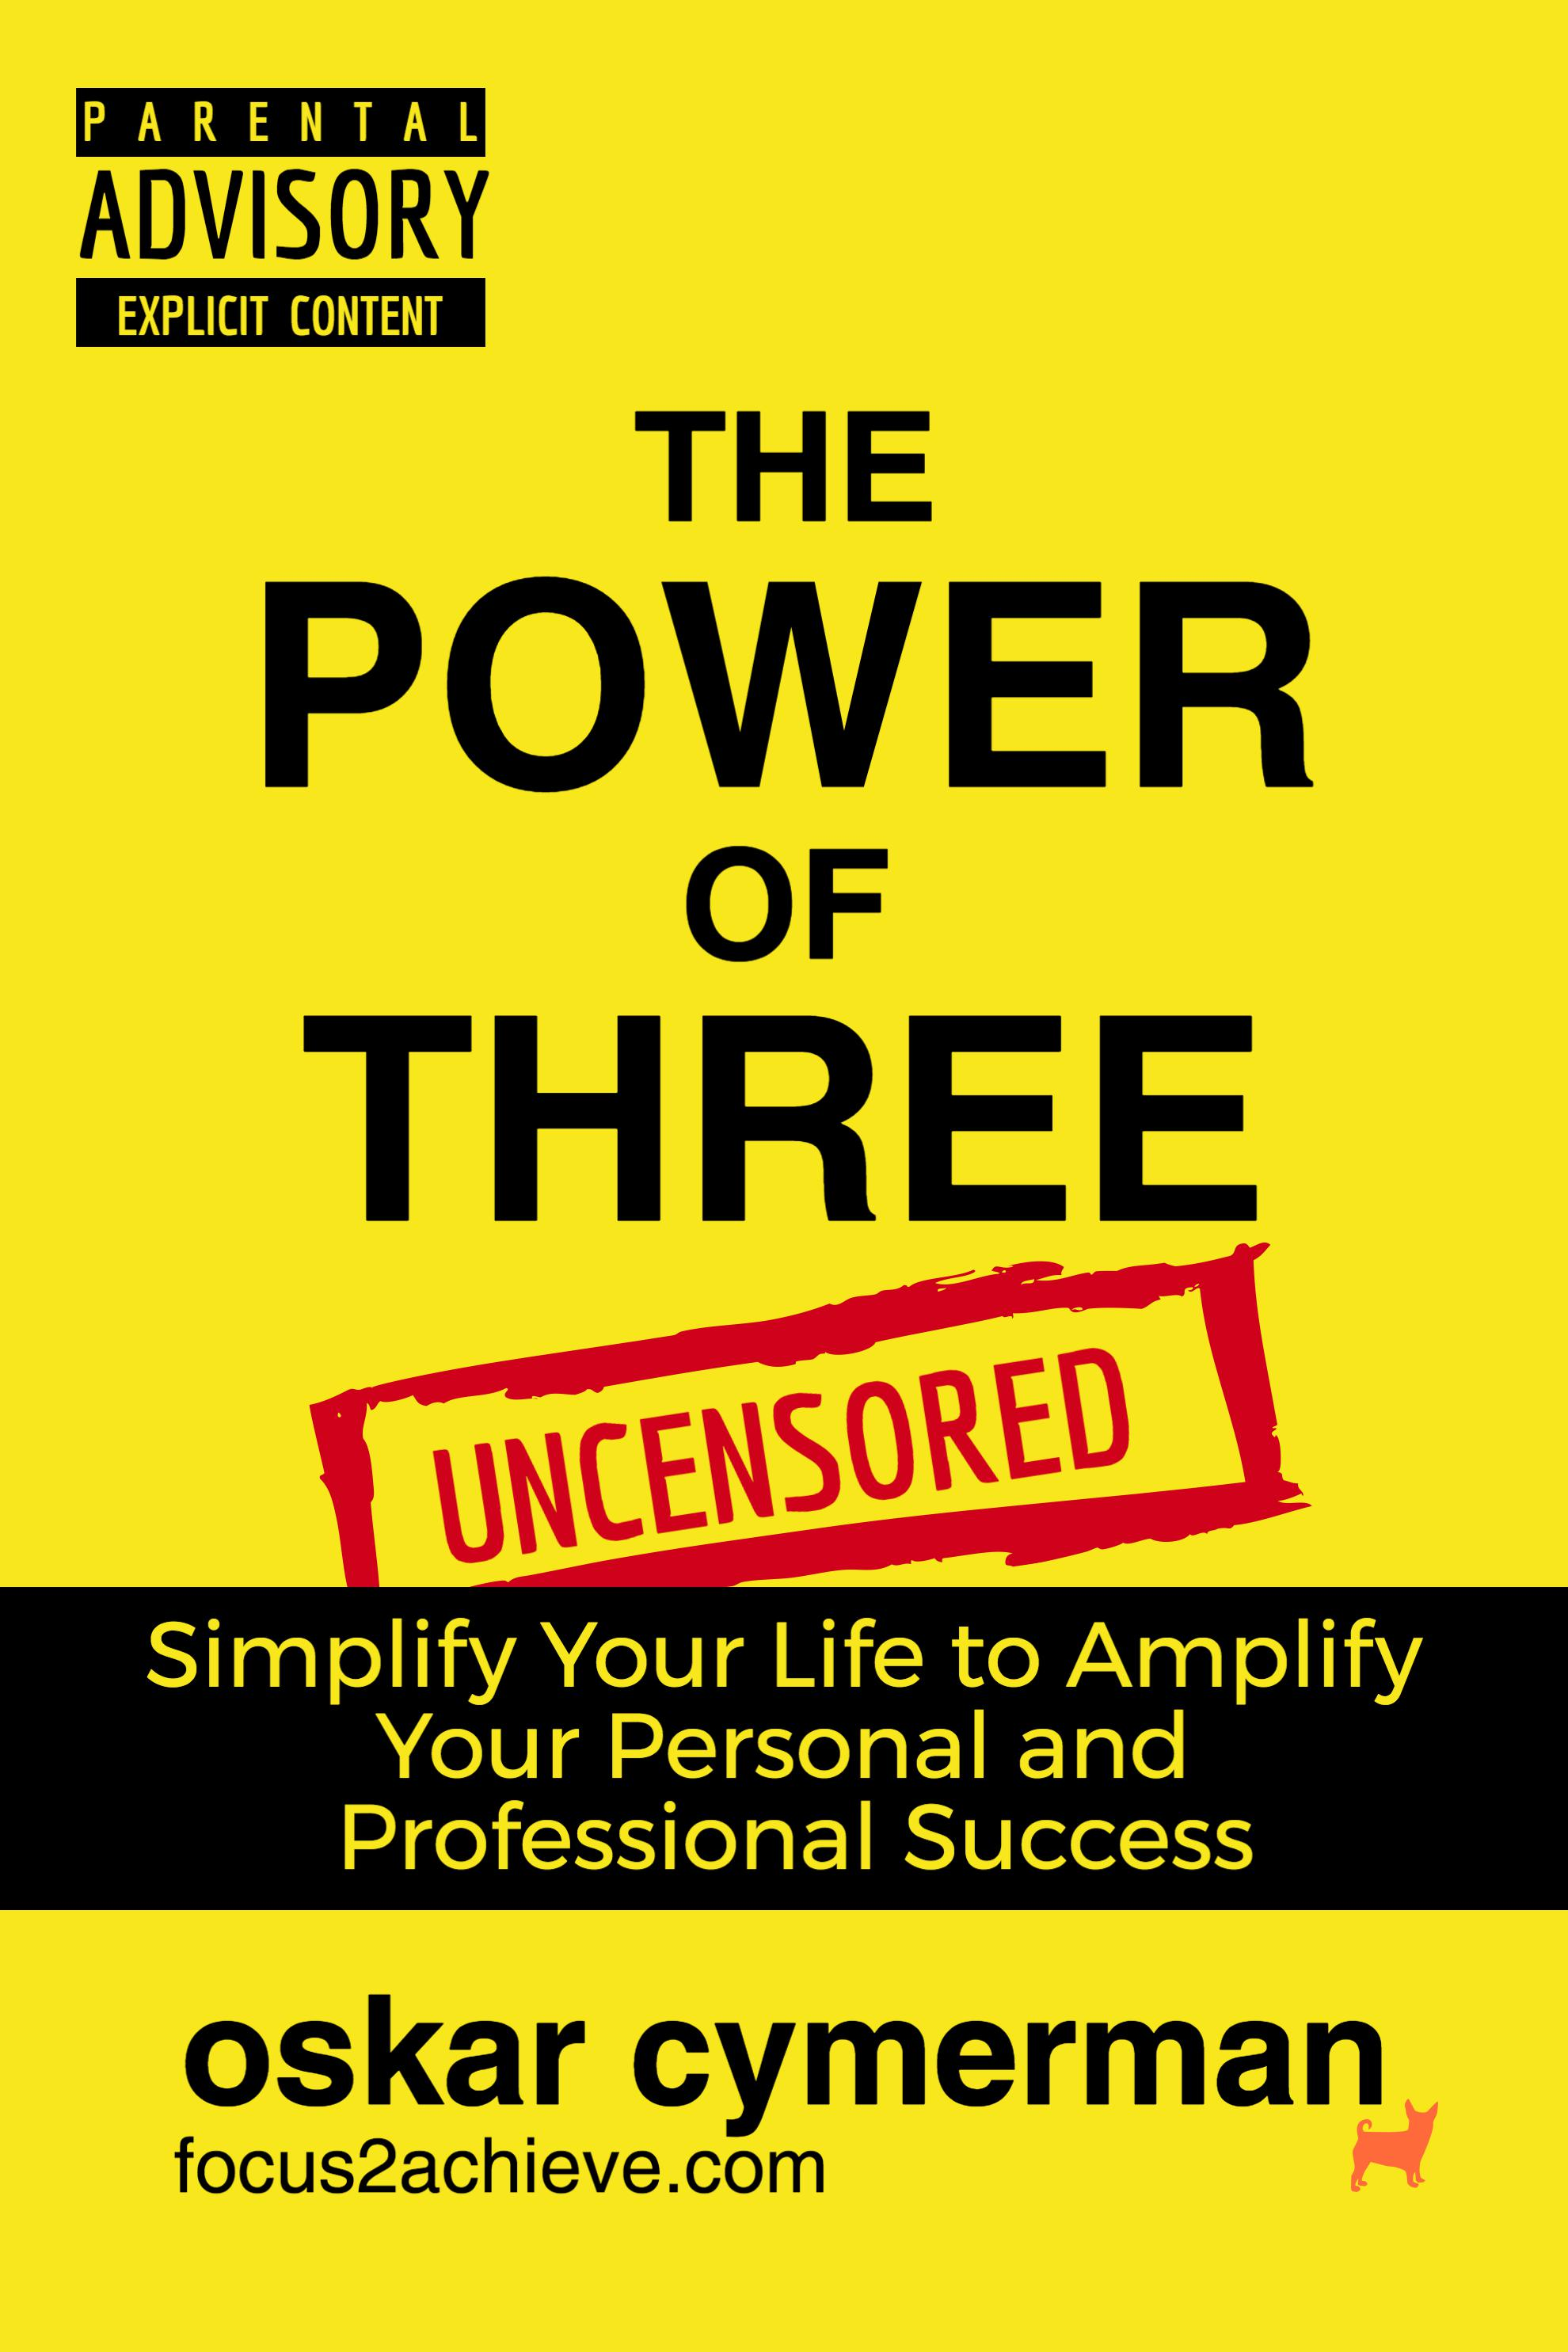 The Power of Three: Simplify to Amplify - FREE BOOK PDF